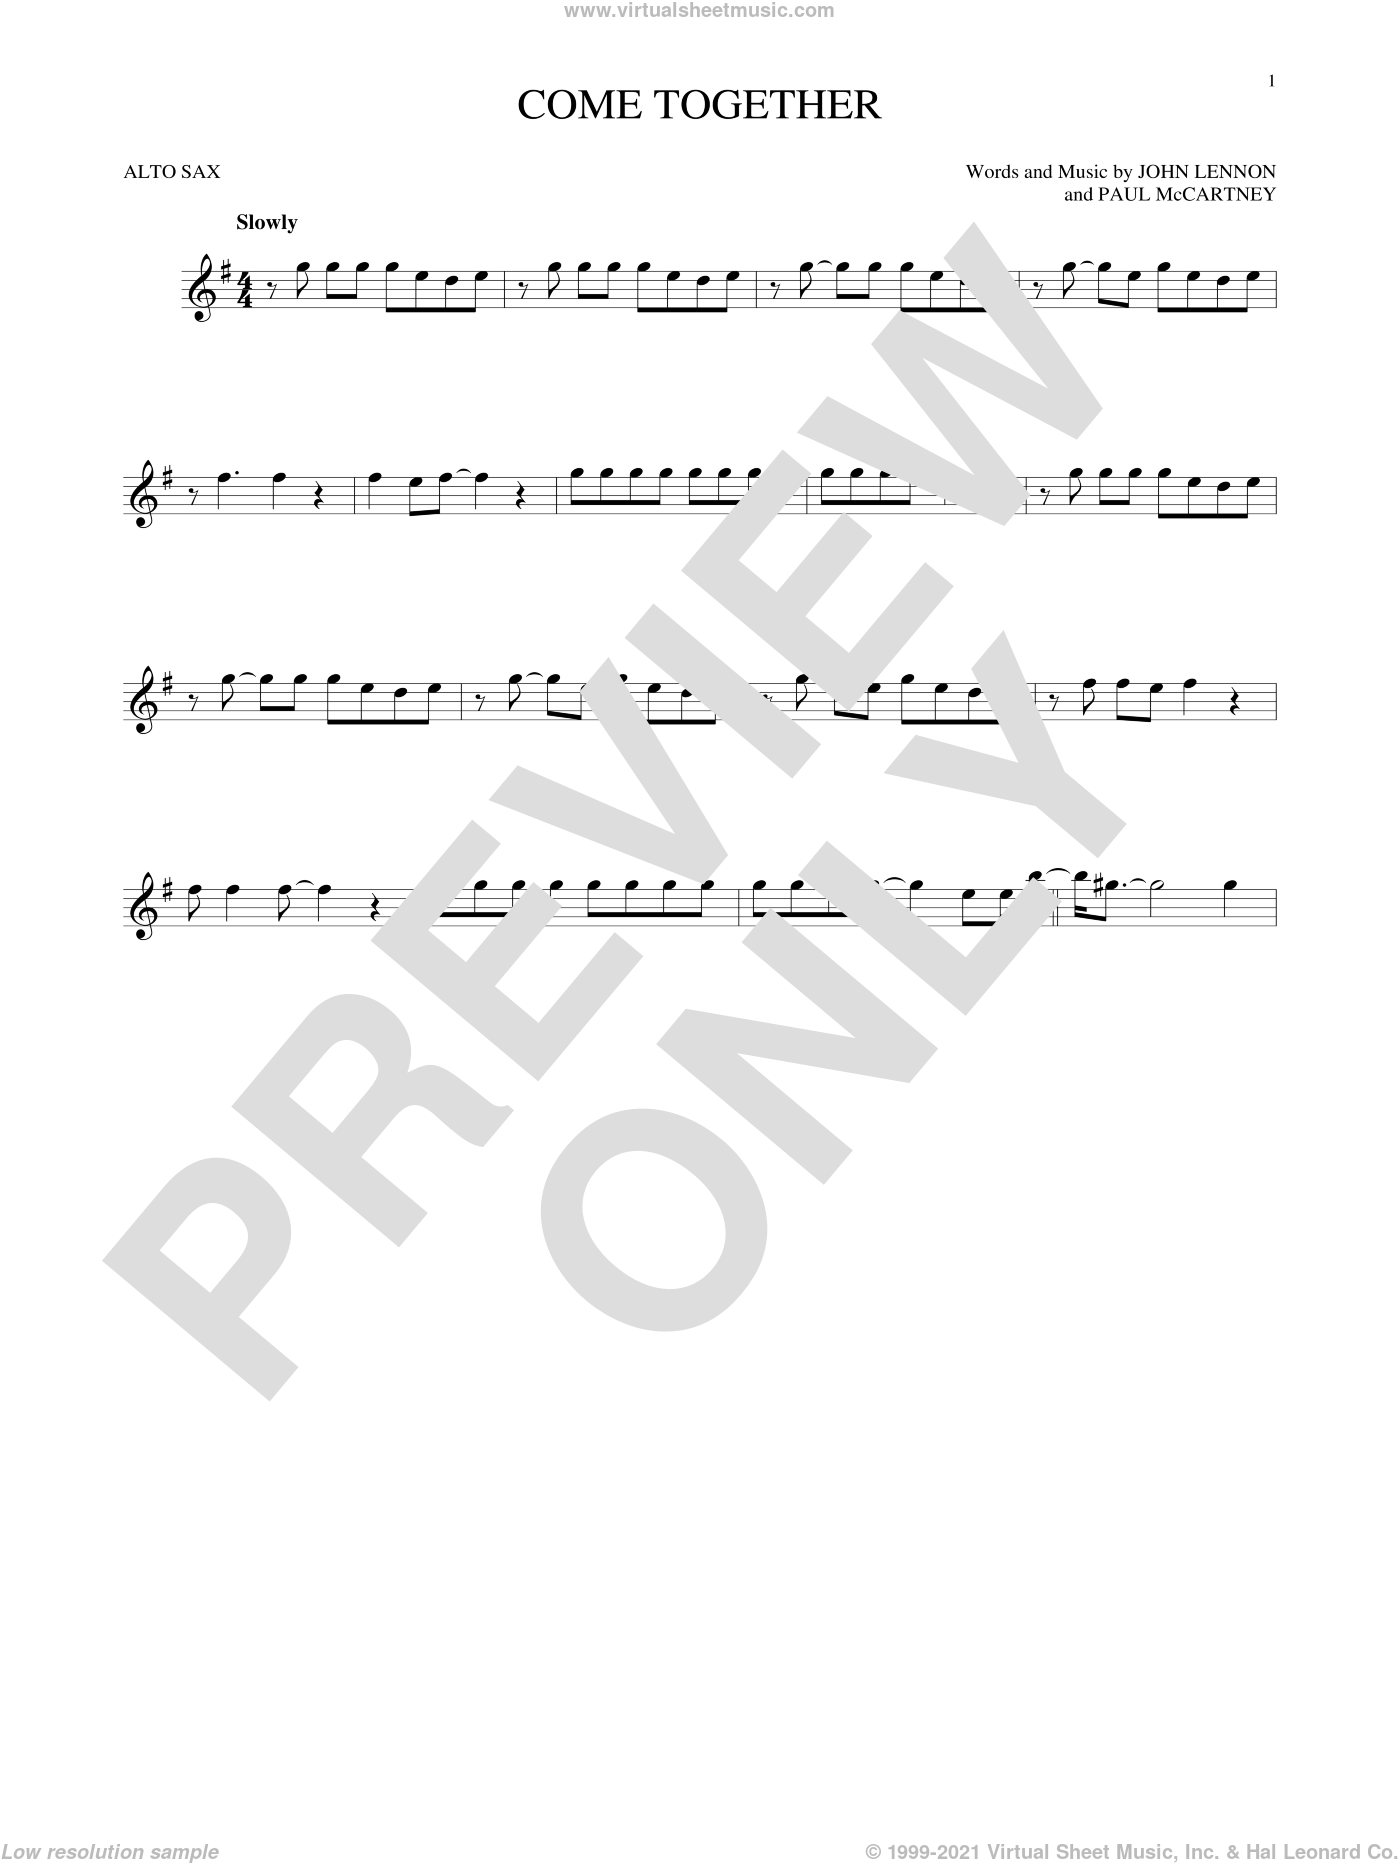 Come Together sheet music for alto saxophone solo by The Beatles, John Lennon and Paul McCartney. Score Image Preview.